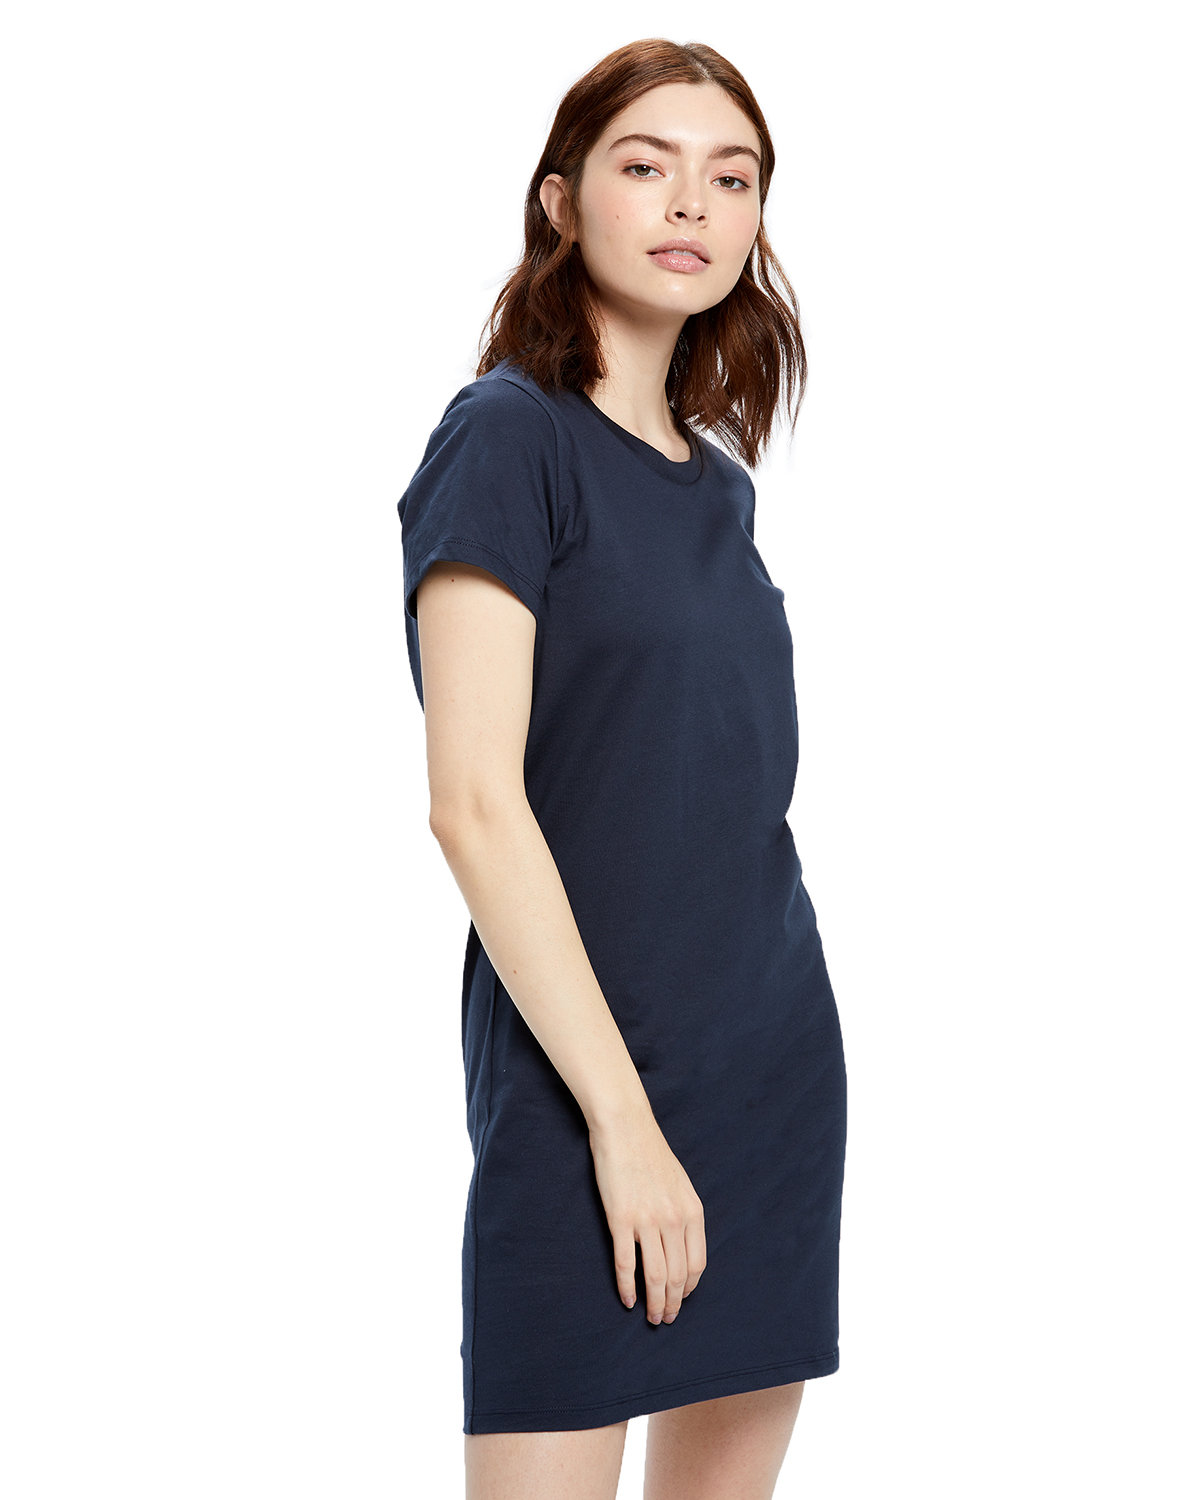 US Blanks Ladies' Cotton T-Shirt Dress NAVY BLUE